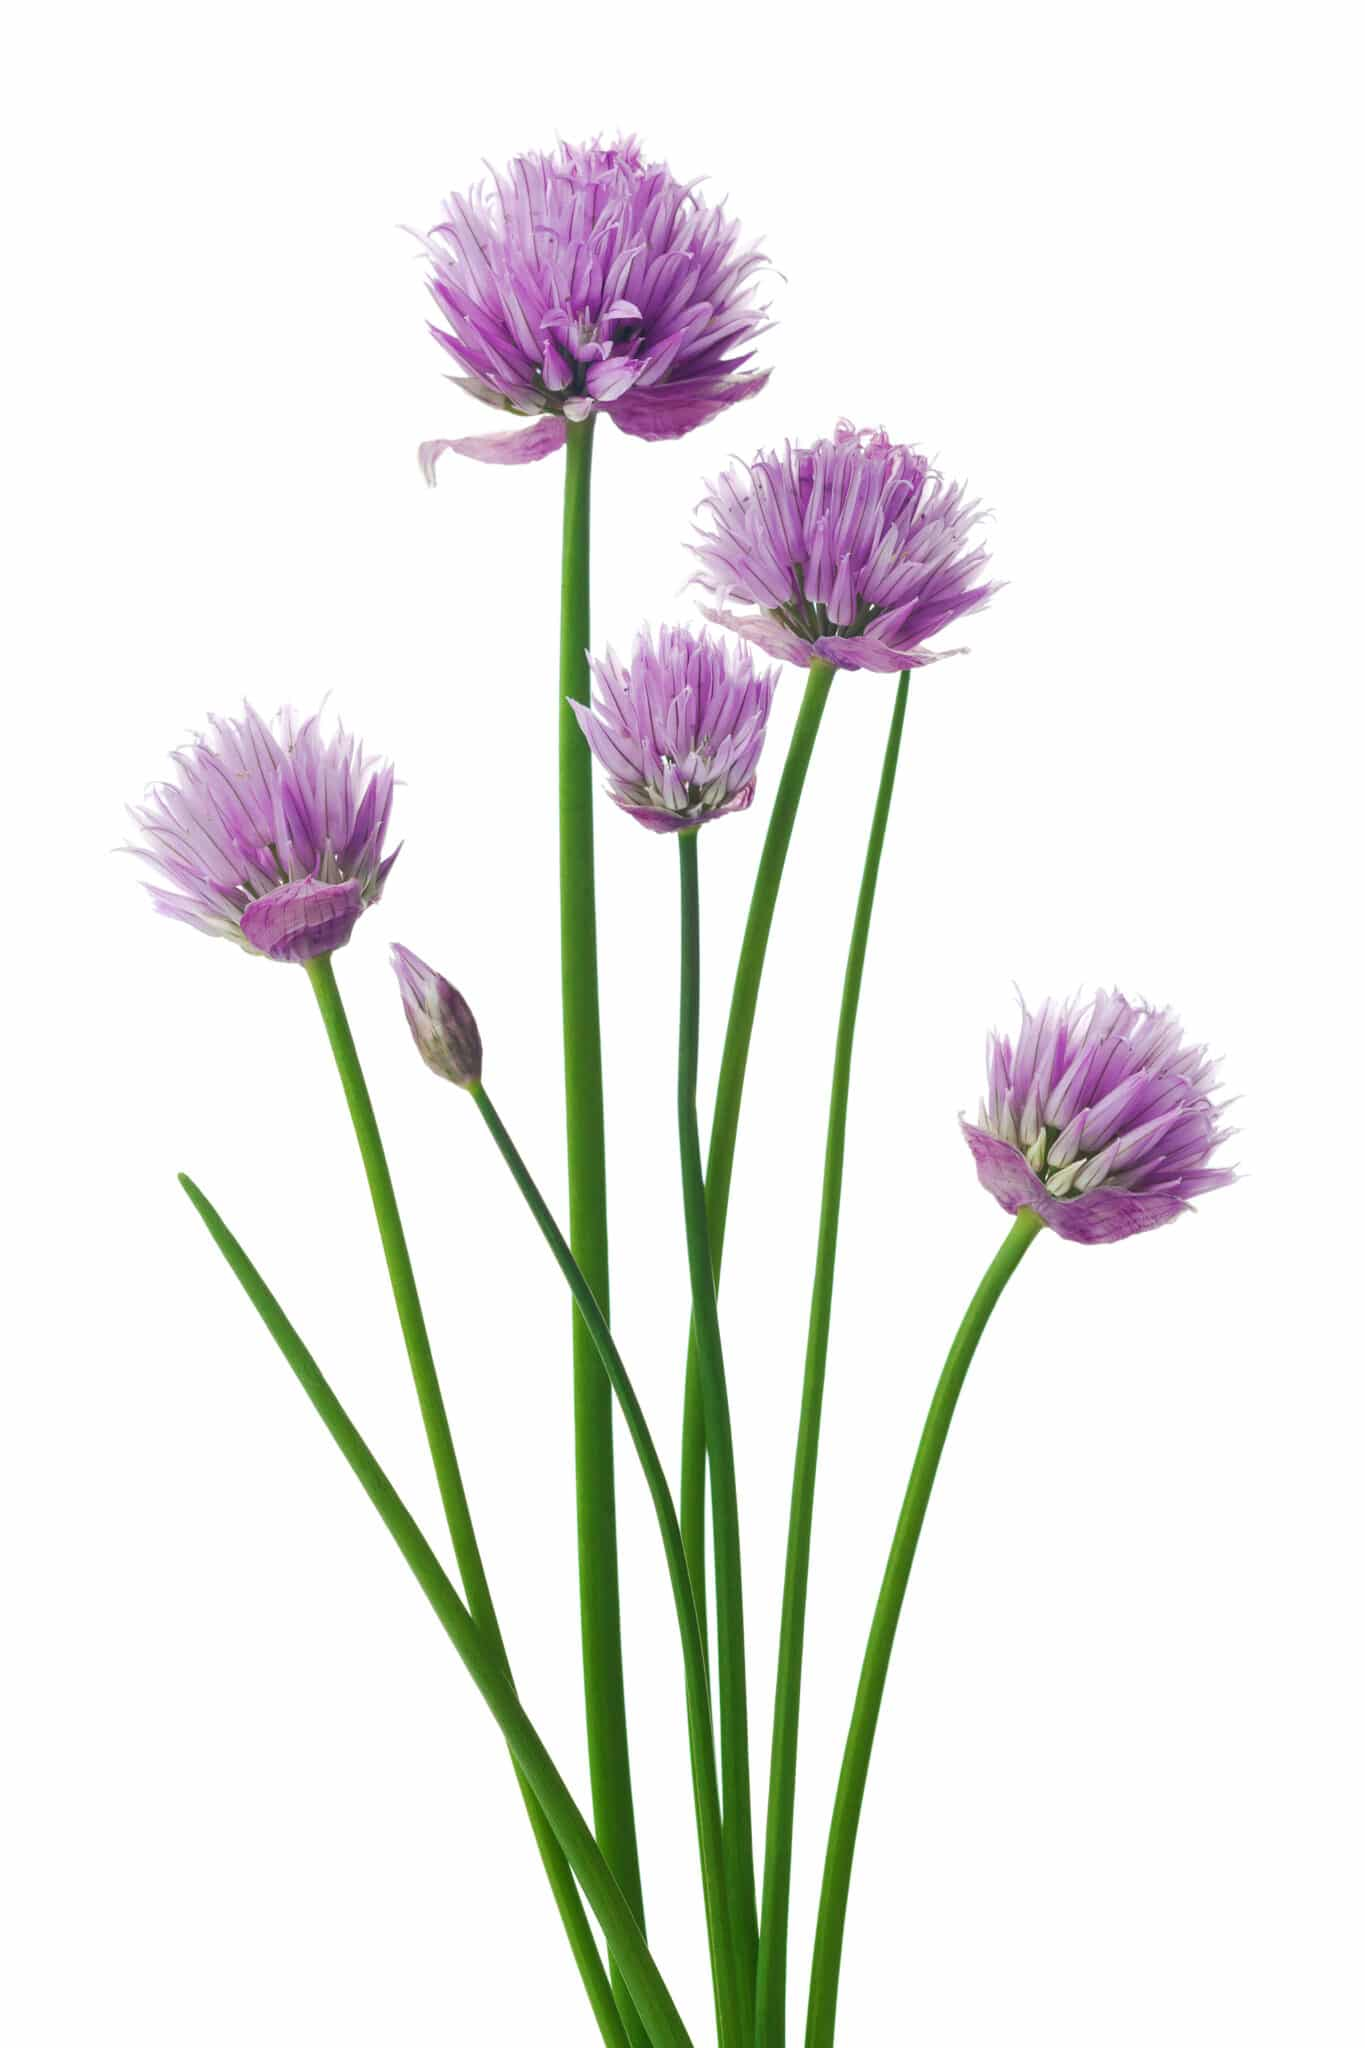 A bloomed chive plant with round purple flowers against a bright white background.